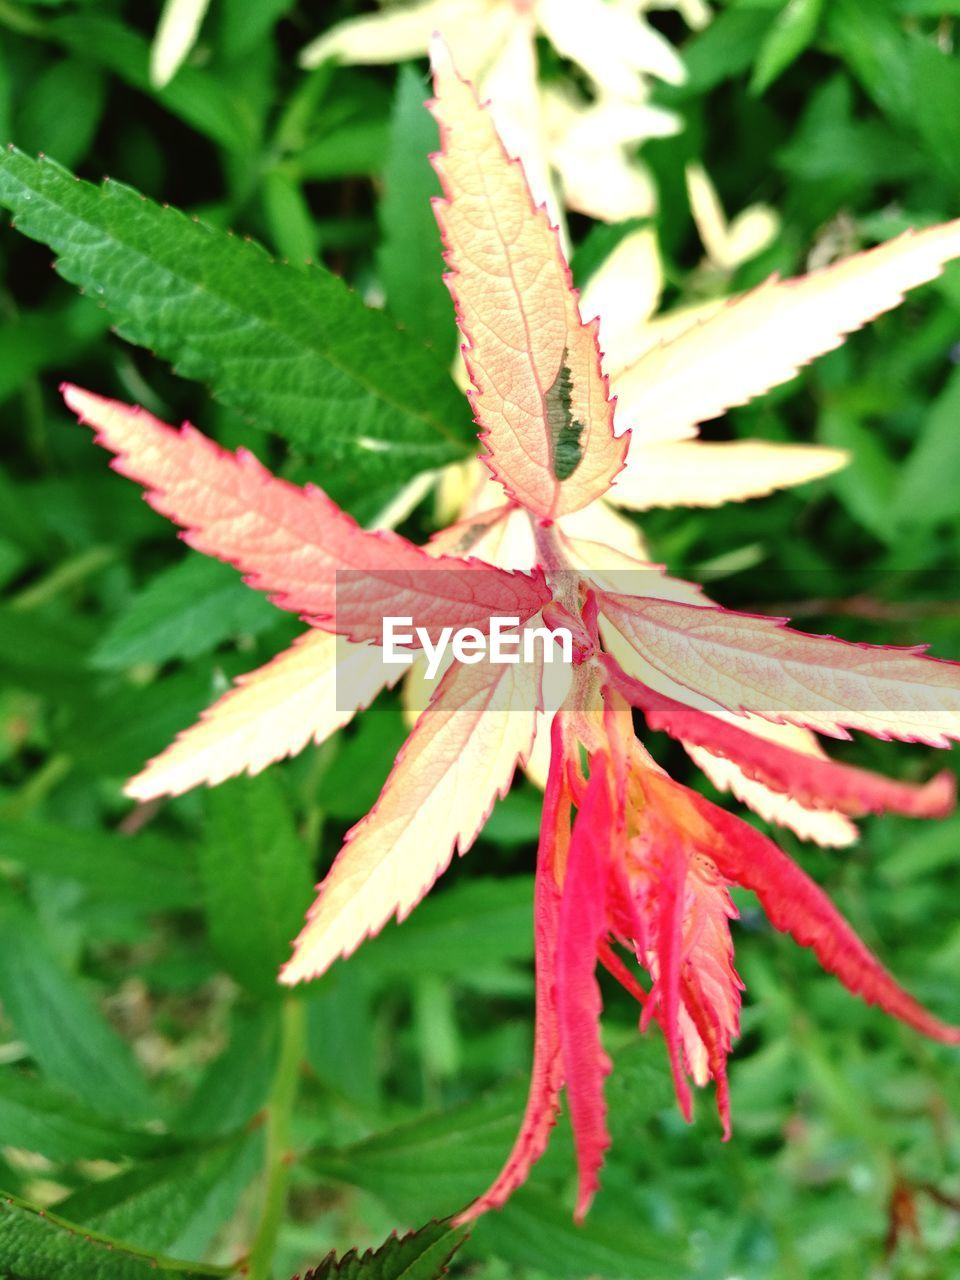 plant part, leaf, plant, close-up, growth, beauty in nature, nature, no people, day, autumn, vulnerability, fragility, change, focus on foreground, red, leaves, outdoors, land, maple leaf, freshness